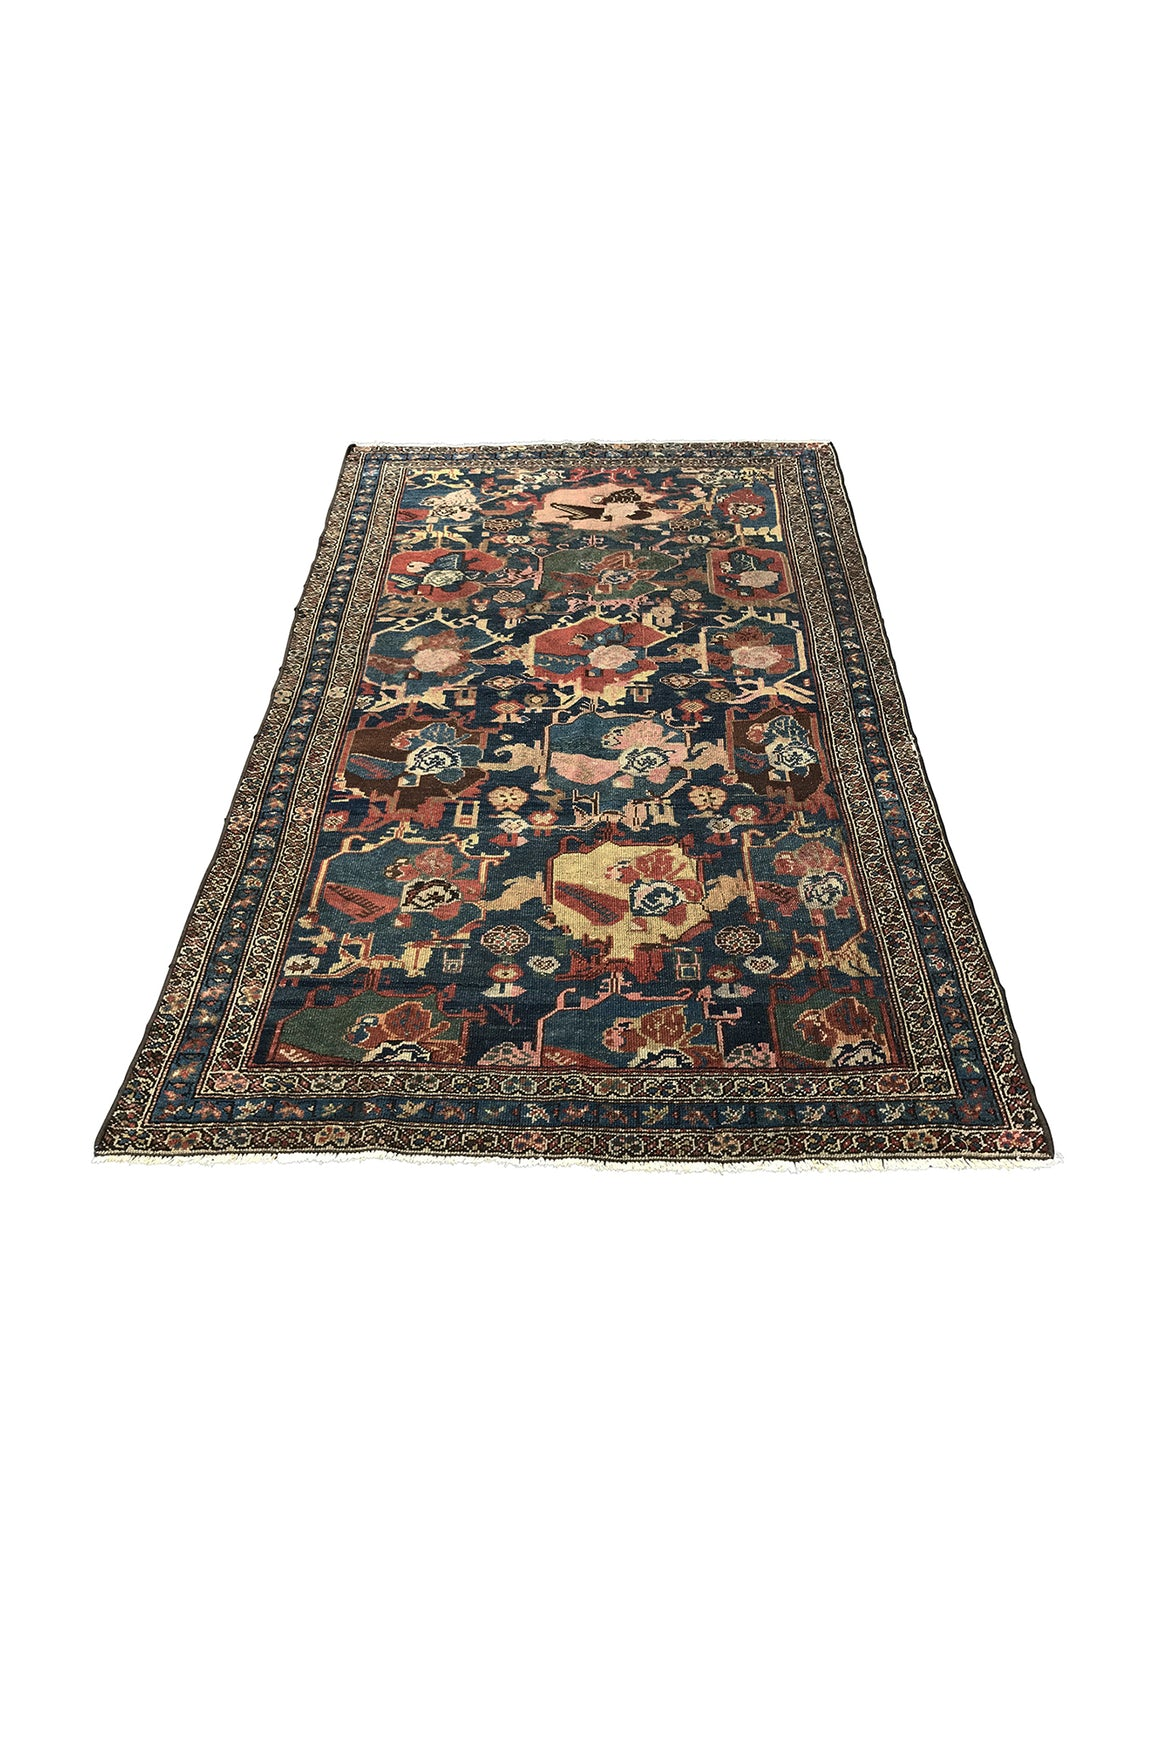 "Early 20th Century Caucasian Rug - 50.5"" X 92"""